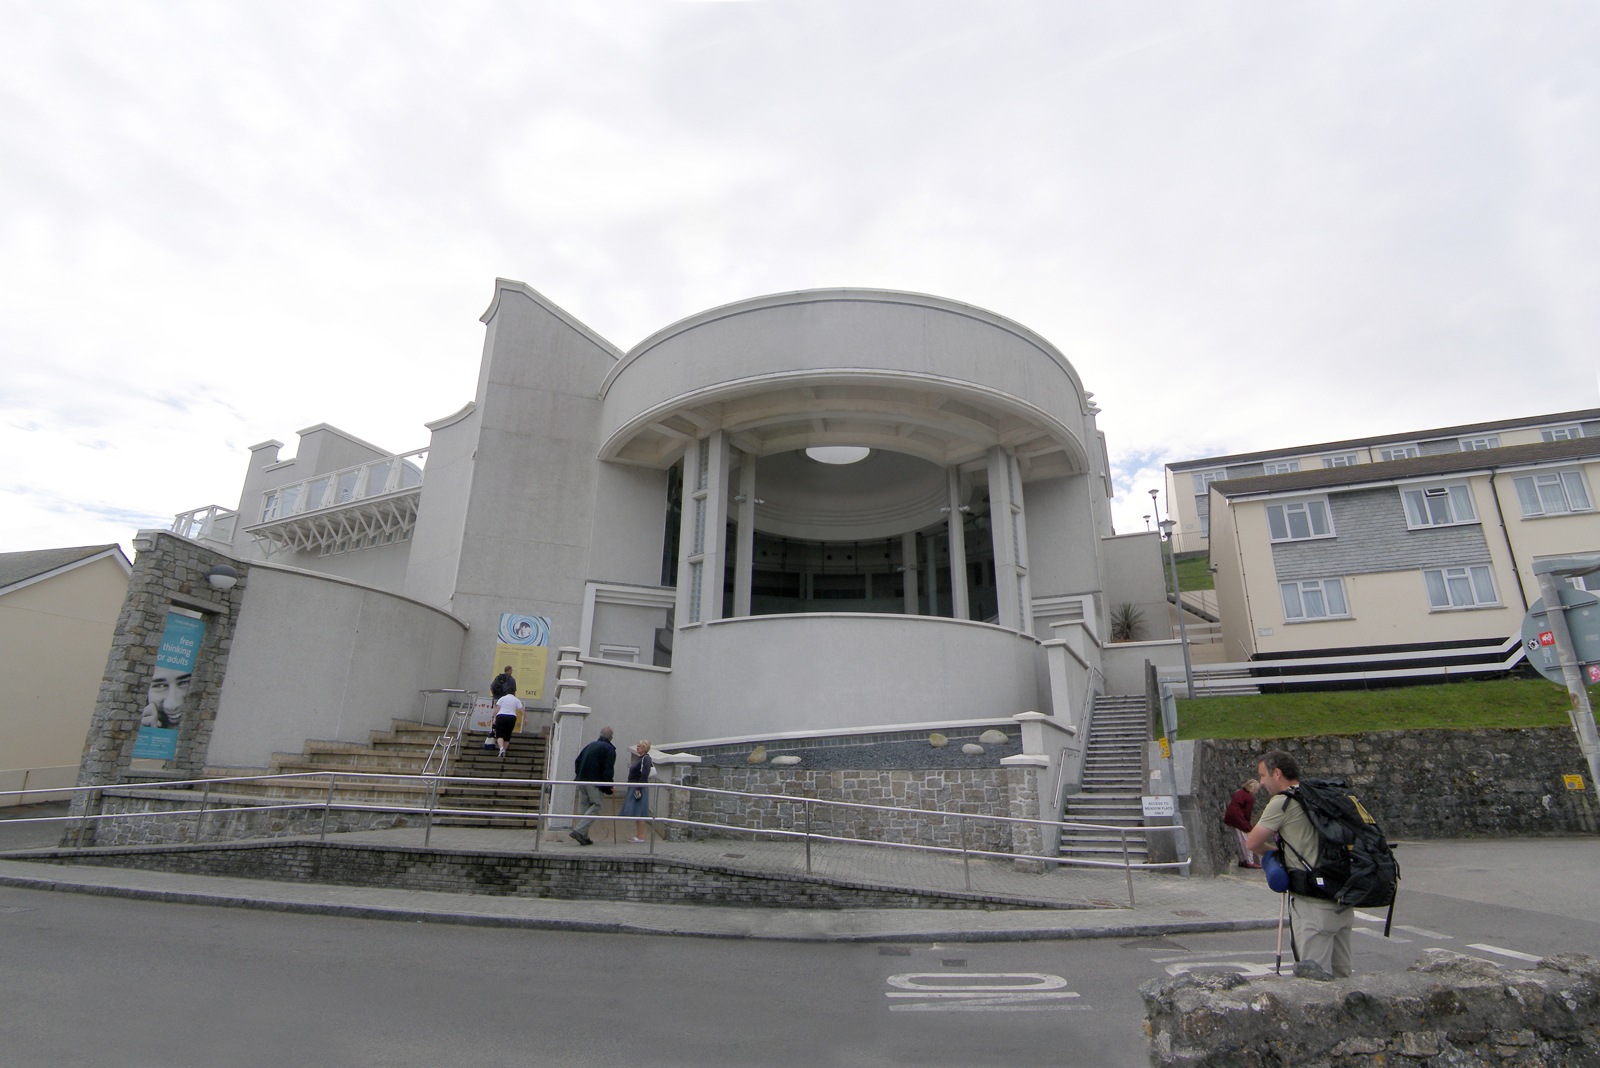 The Tate Gallery at St Ives